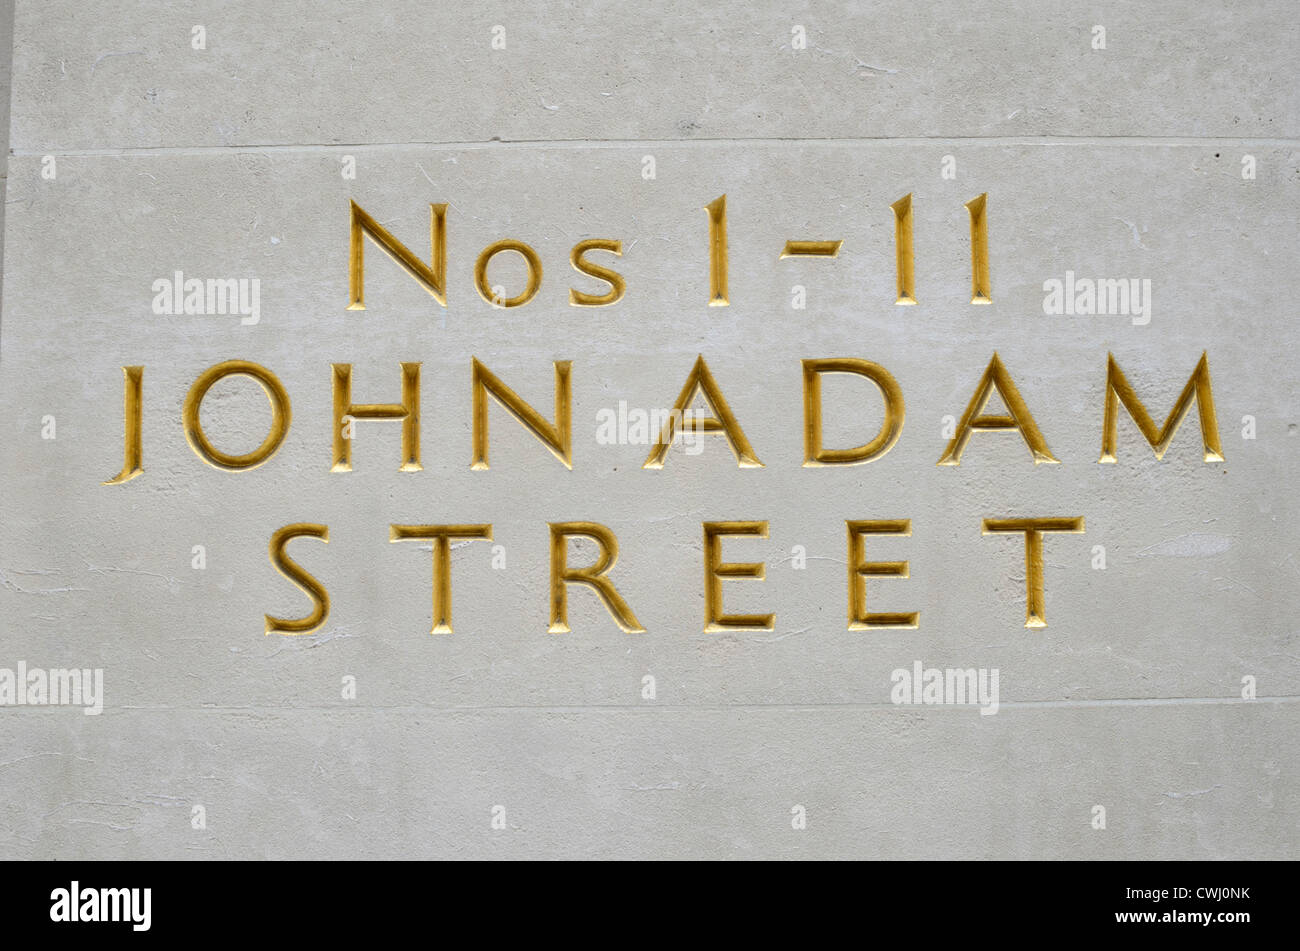 Nos 1-11 John Adam Street sign on a building wall, London, England - Stock Image